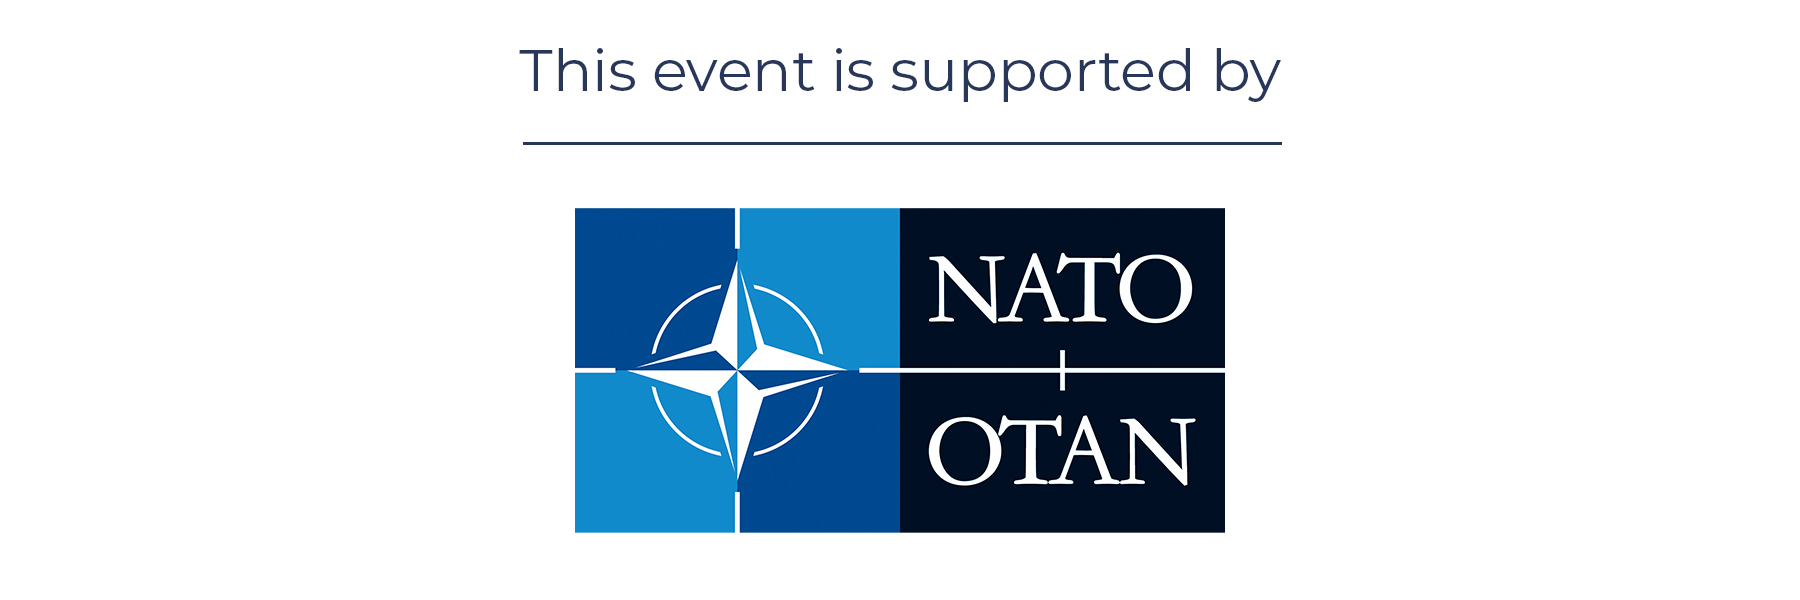 NATO Footer